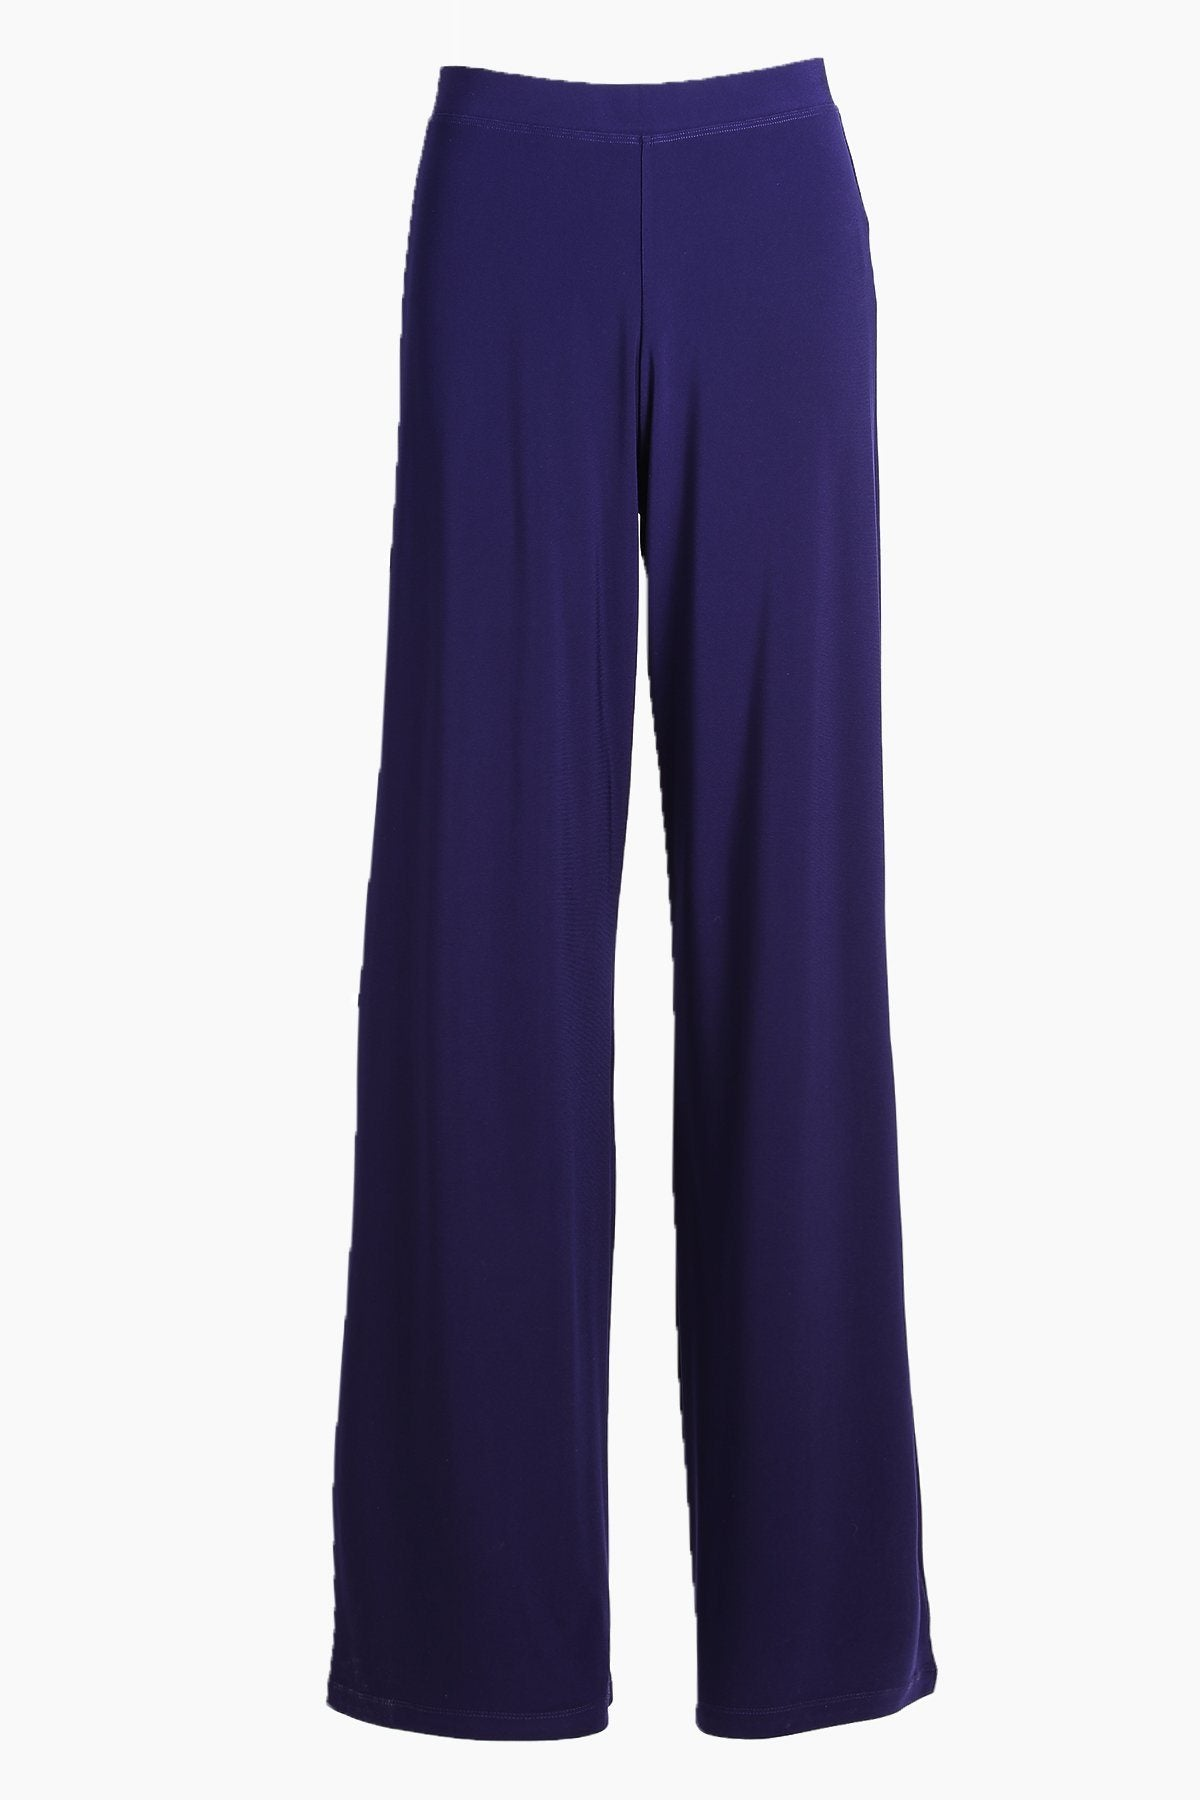 Wide Leg Pants Navy